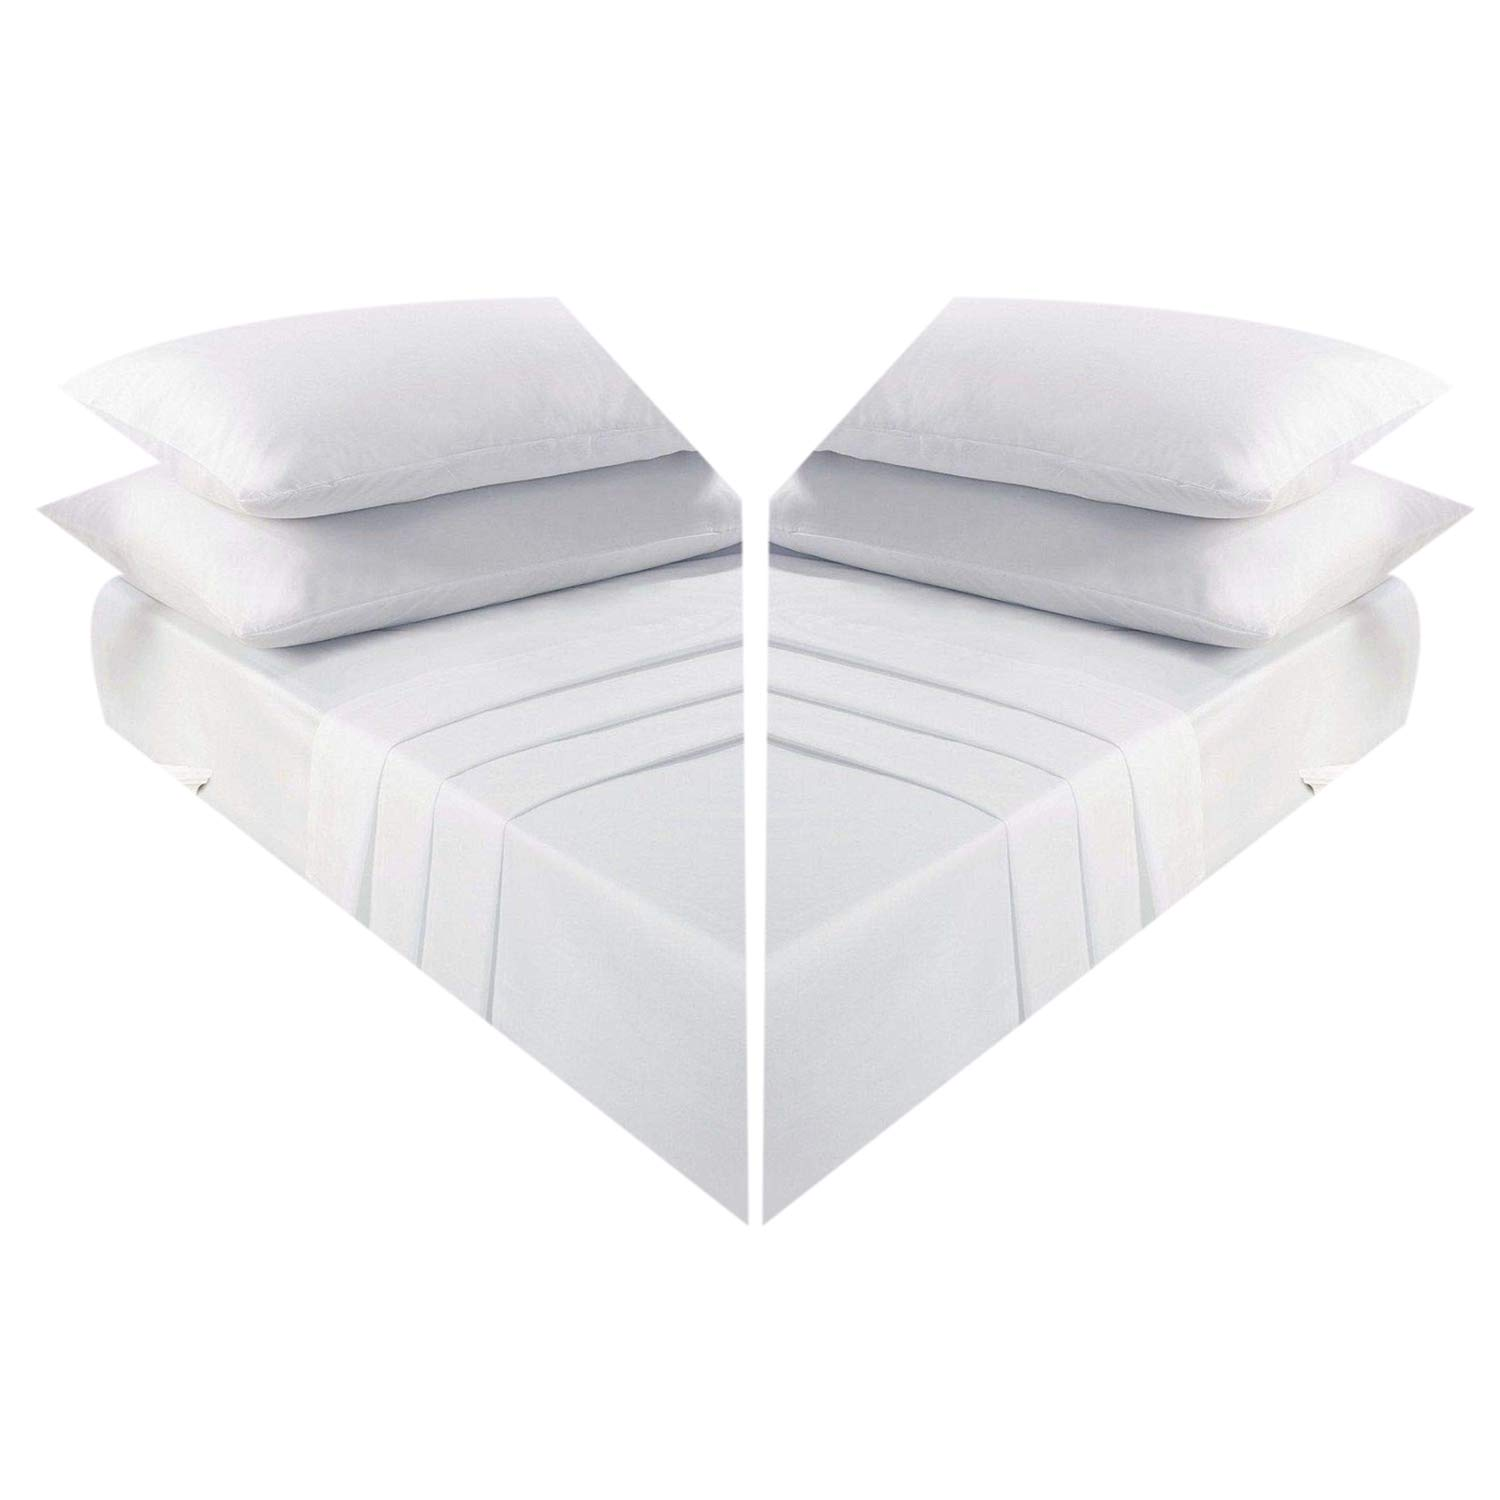 Fitted Bed Sheet Poly Cotton White Bunk Beds Sheet Cotton Bunk Bed Fitted Sheets